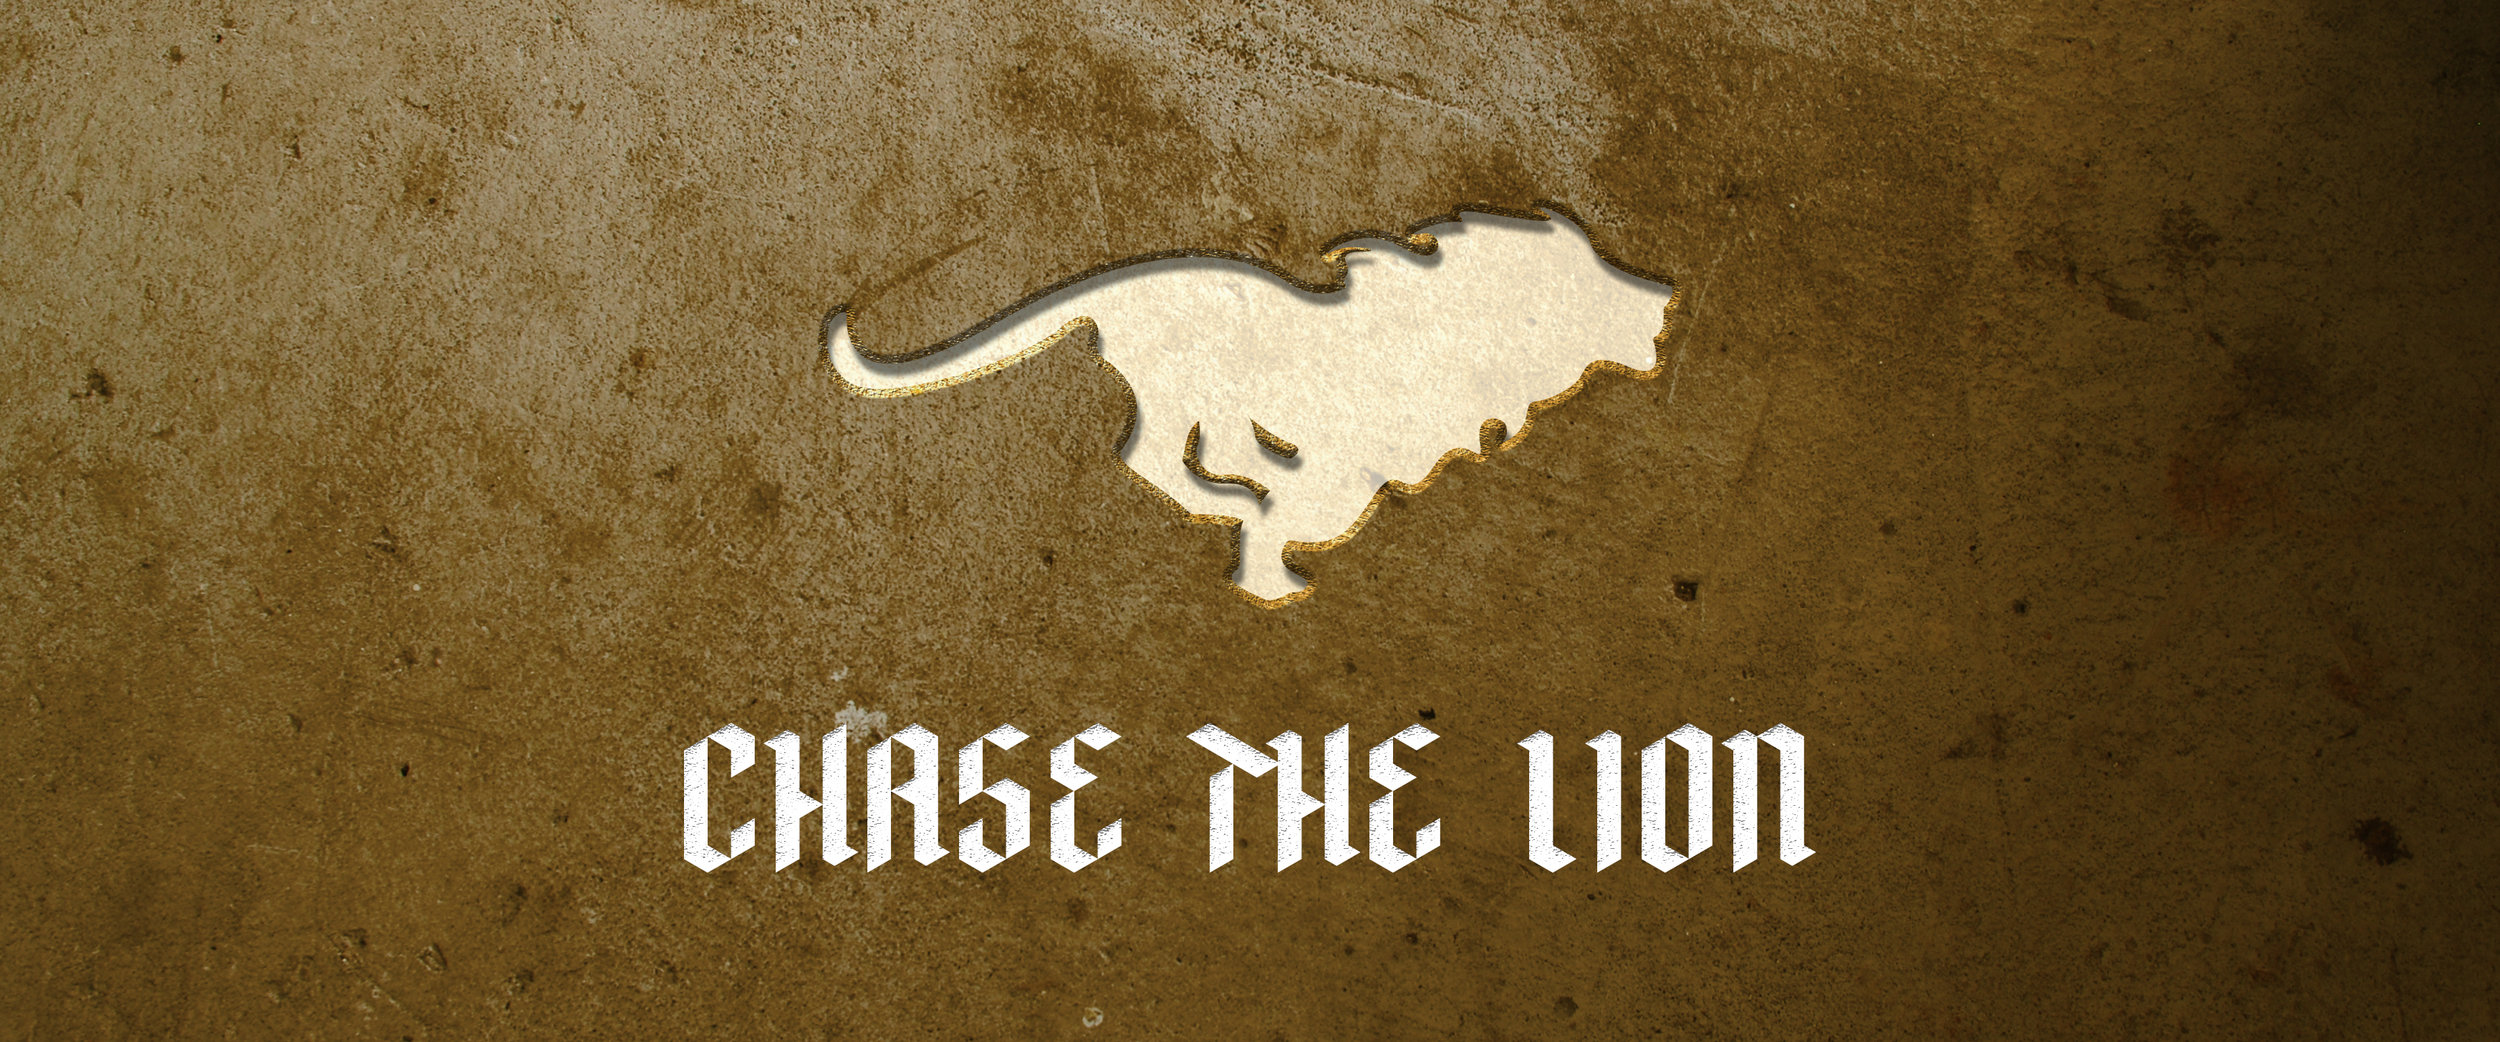 Chase the Lion Graphic FINAL.jpg